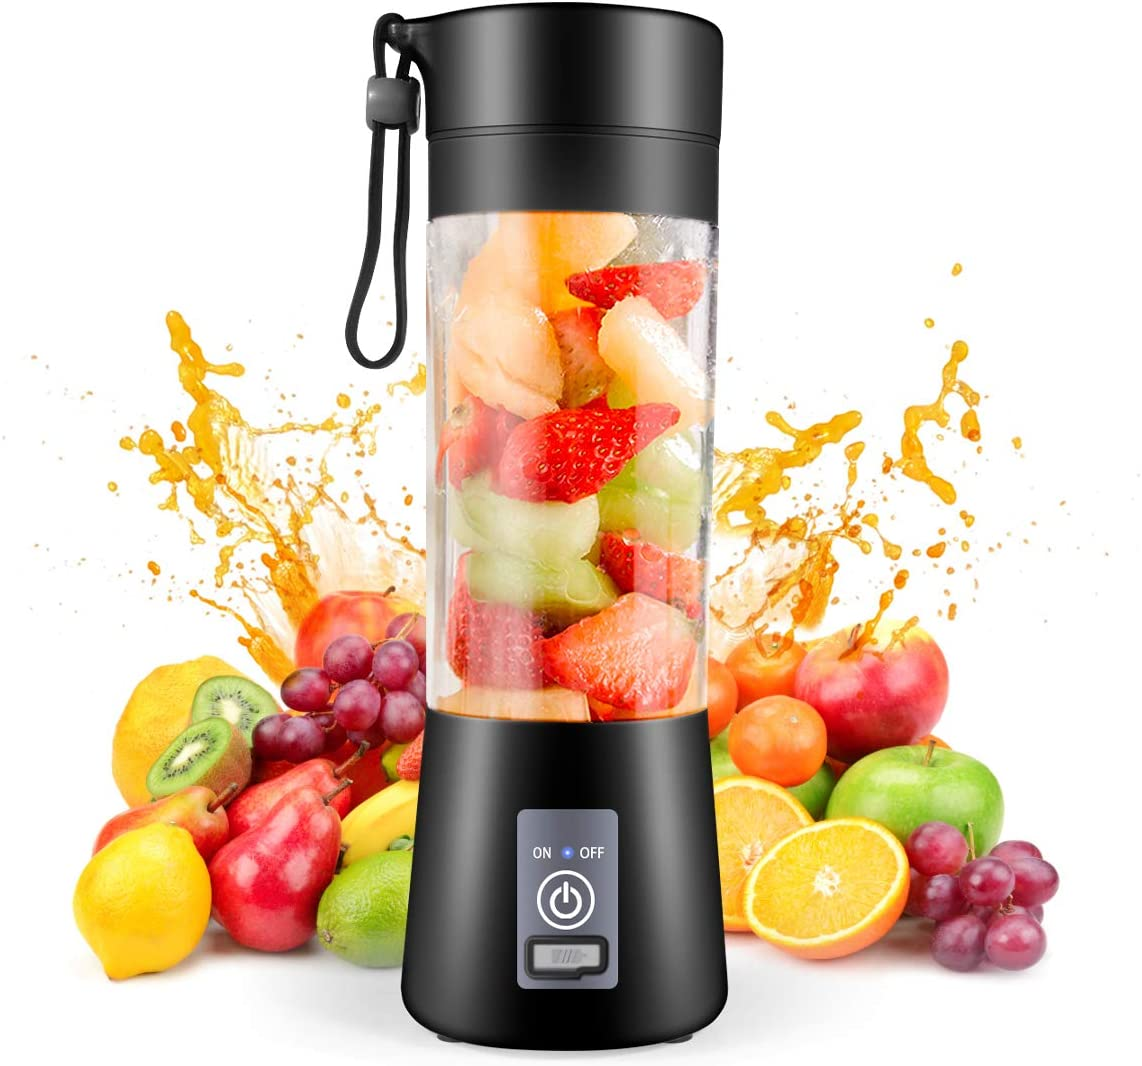 Portable Blender,Personal Blender,Smoothies Mini Jucier Cup USB Rechargeable and Personal Size Blender Shakes,380ml,Fruit Juice,Mixer: Home & Kitchen